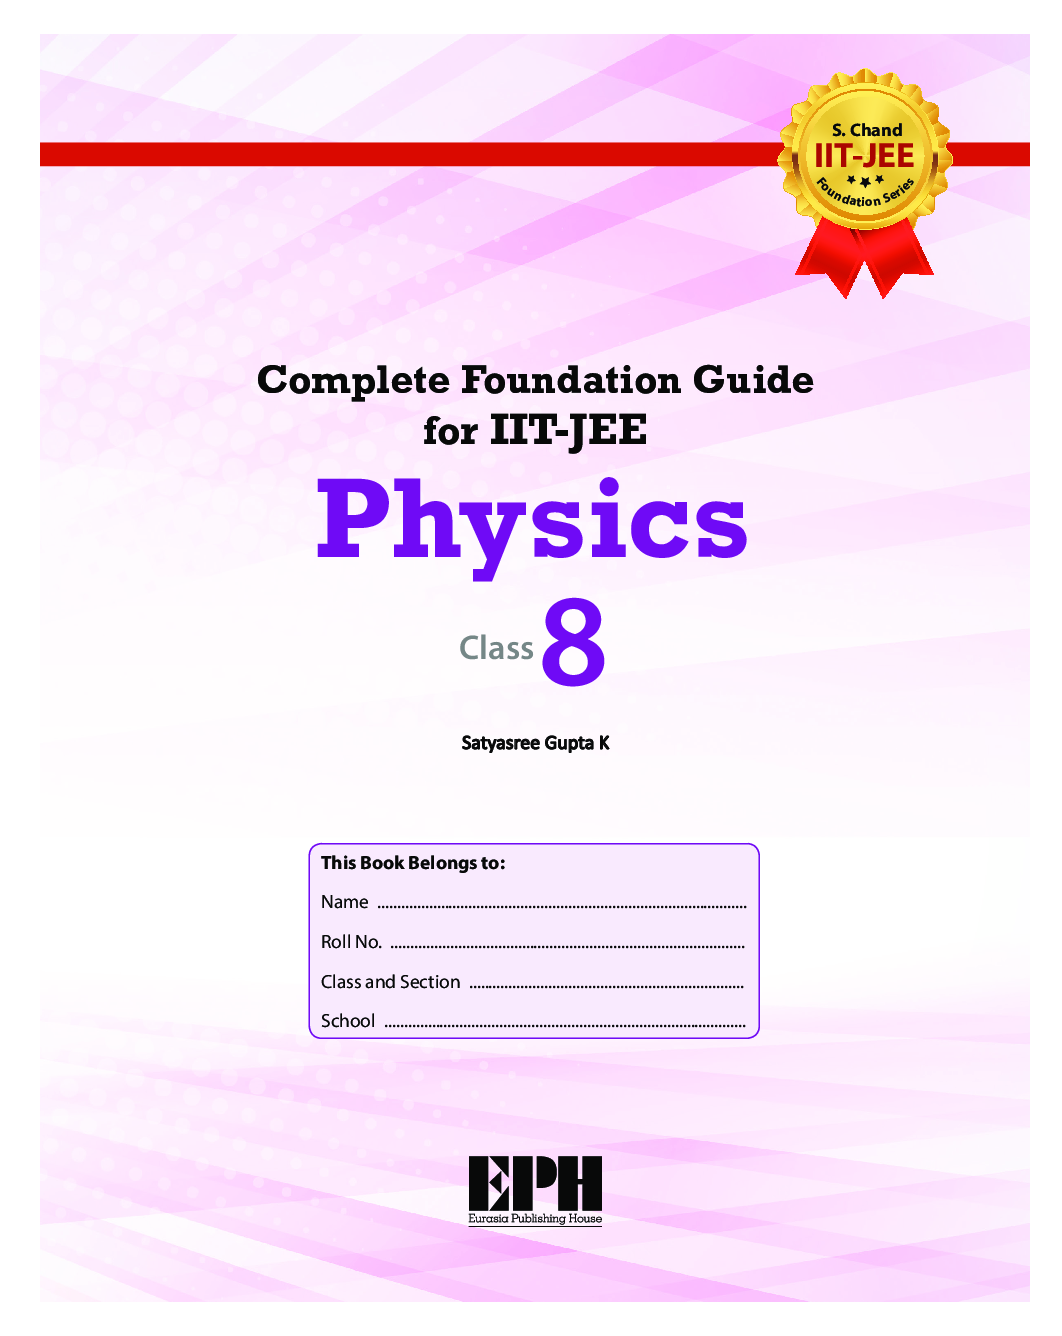 Complete Foundation Guide For IIT Jee, Physics Class 8 - Page 2